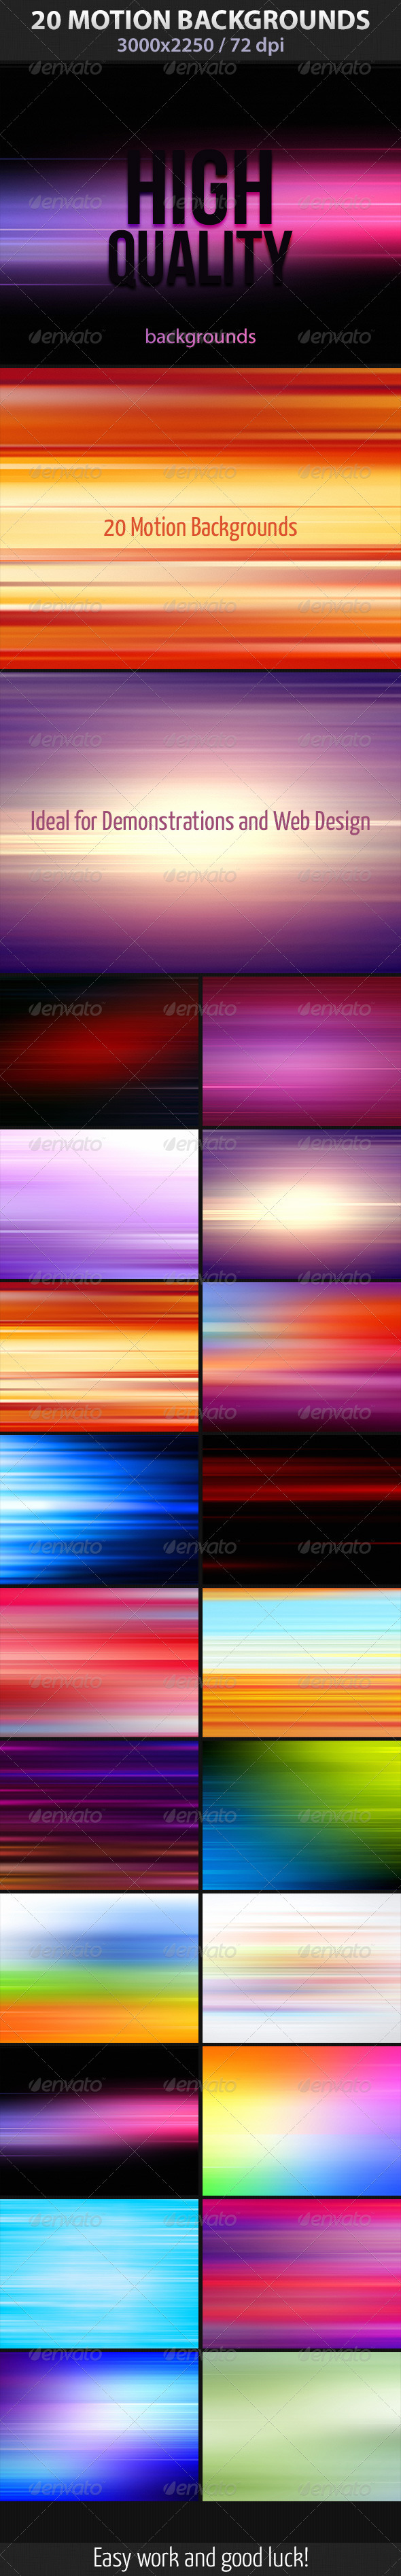 20 Motion Backgrounds - Abstract Backgrounds